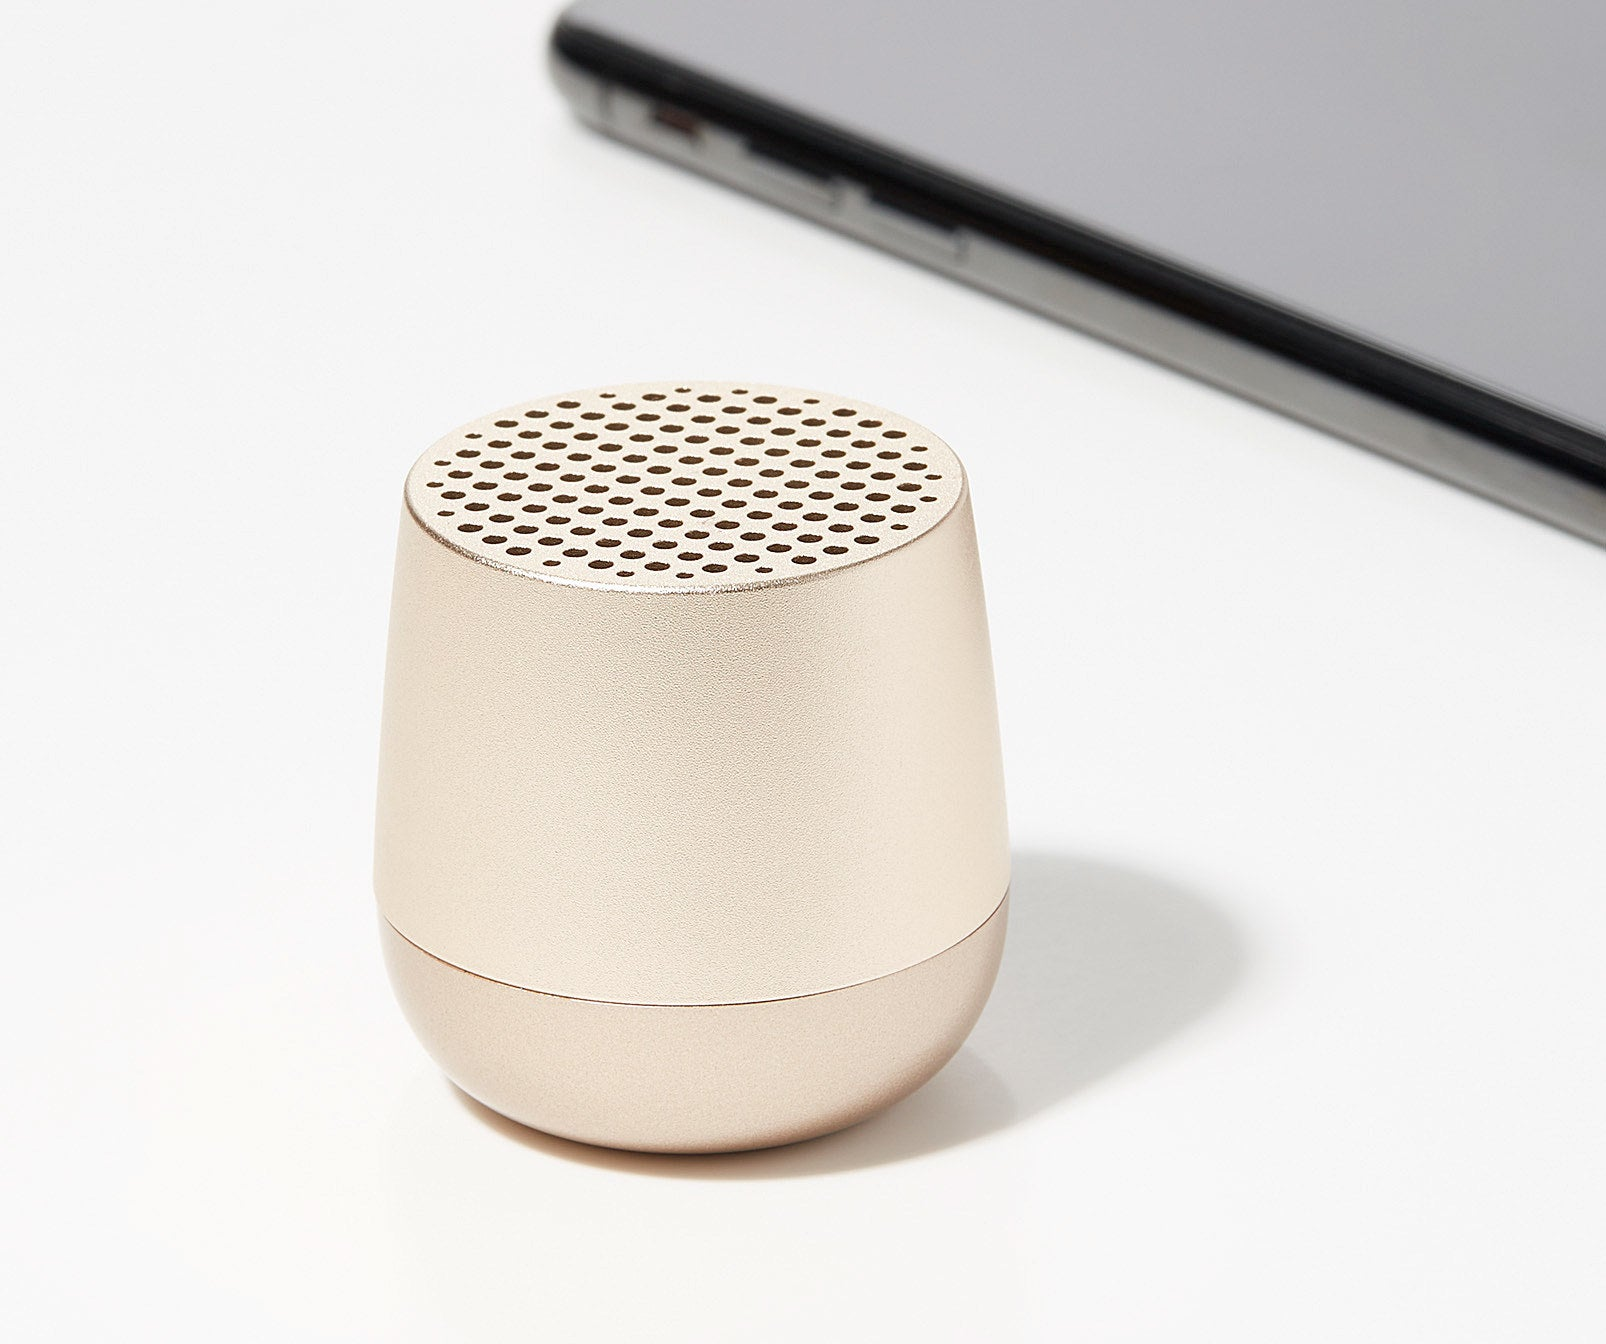 A small Bluetooth speaker on a plain background